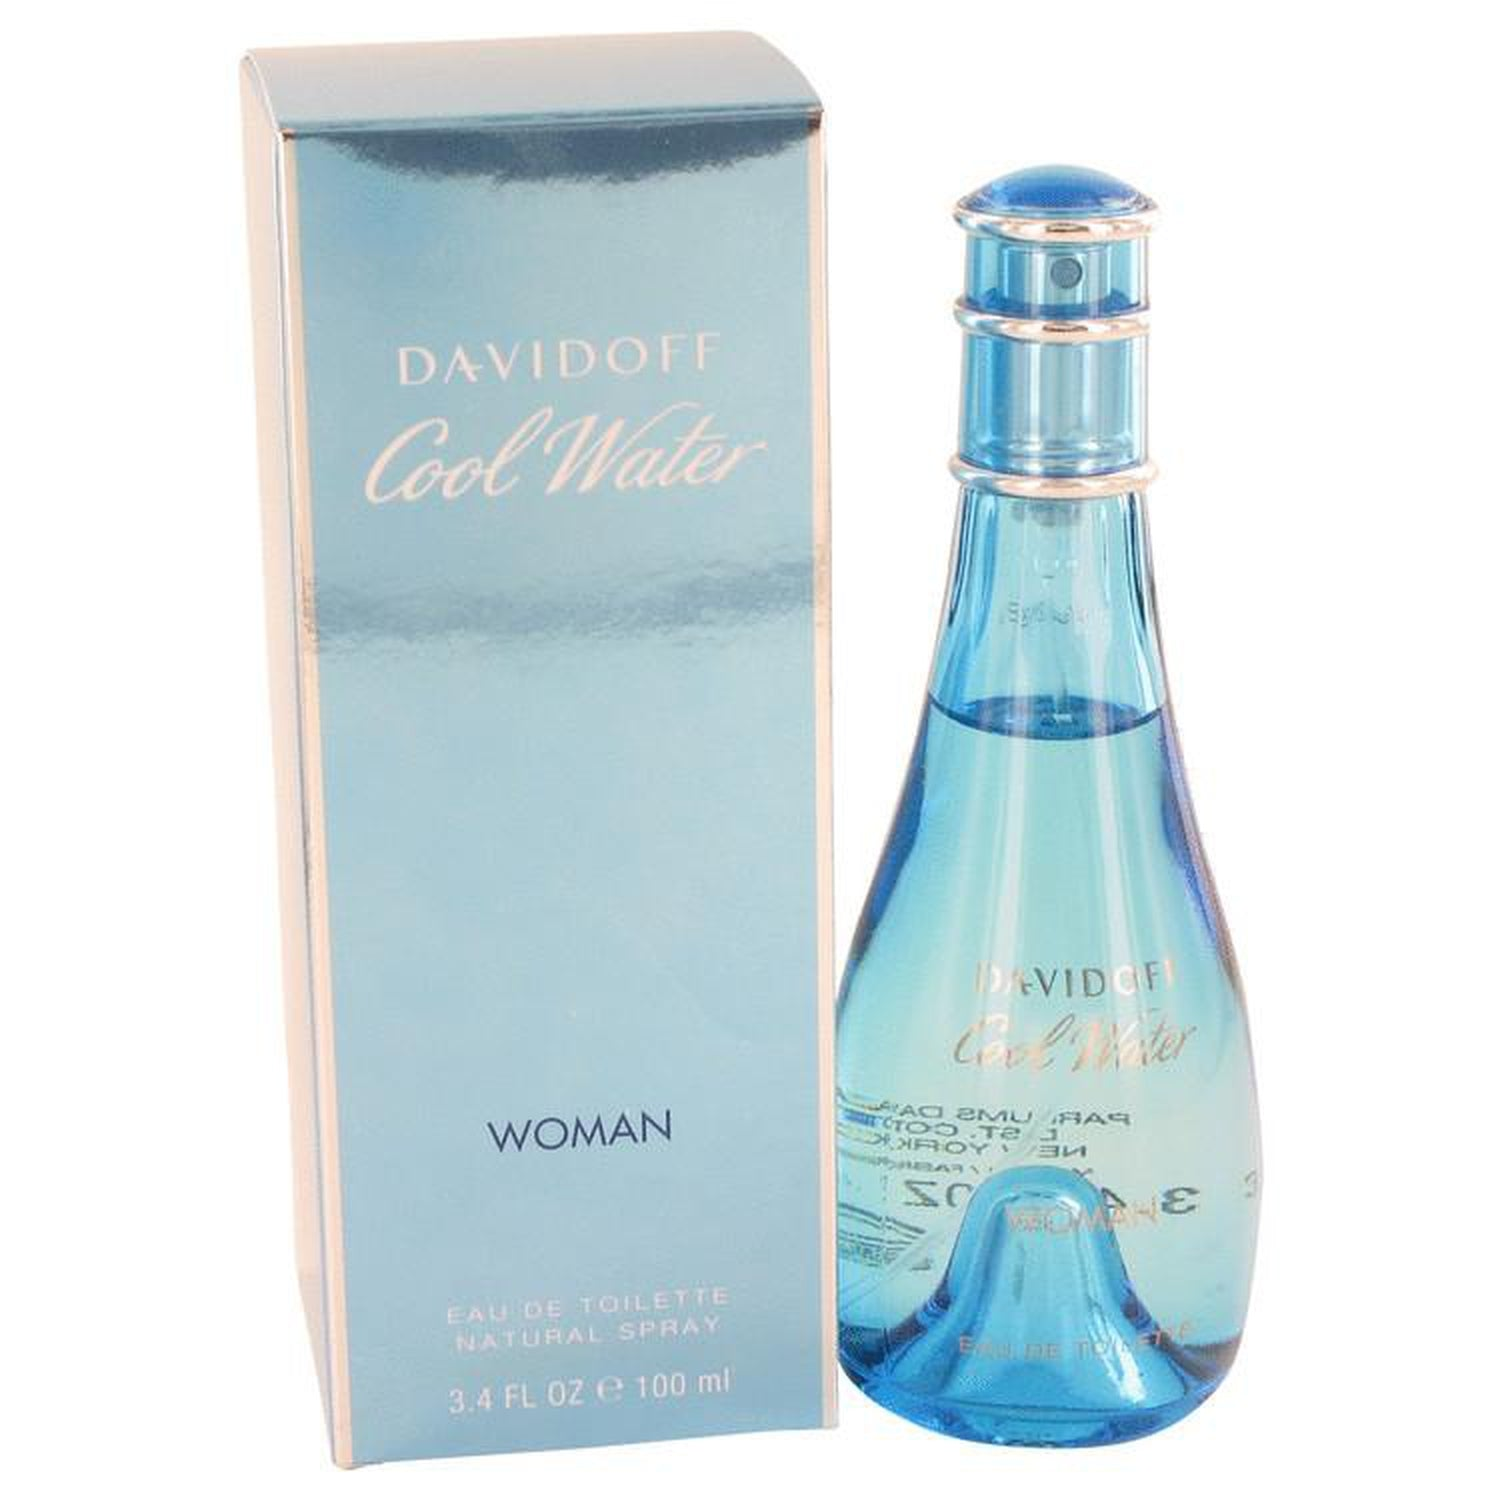 COOL WATER by Davidoff Eau De Toilette Spray 3.4 oz